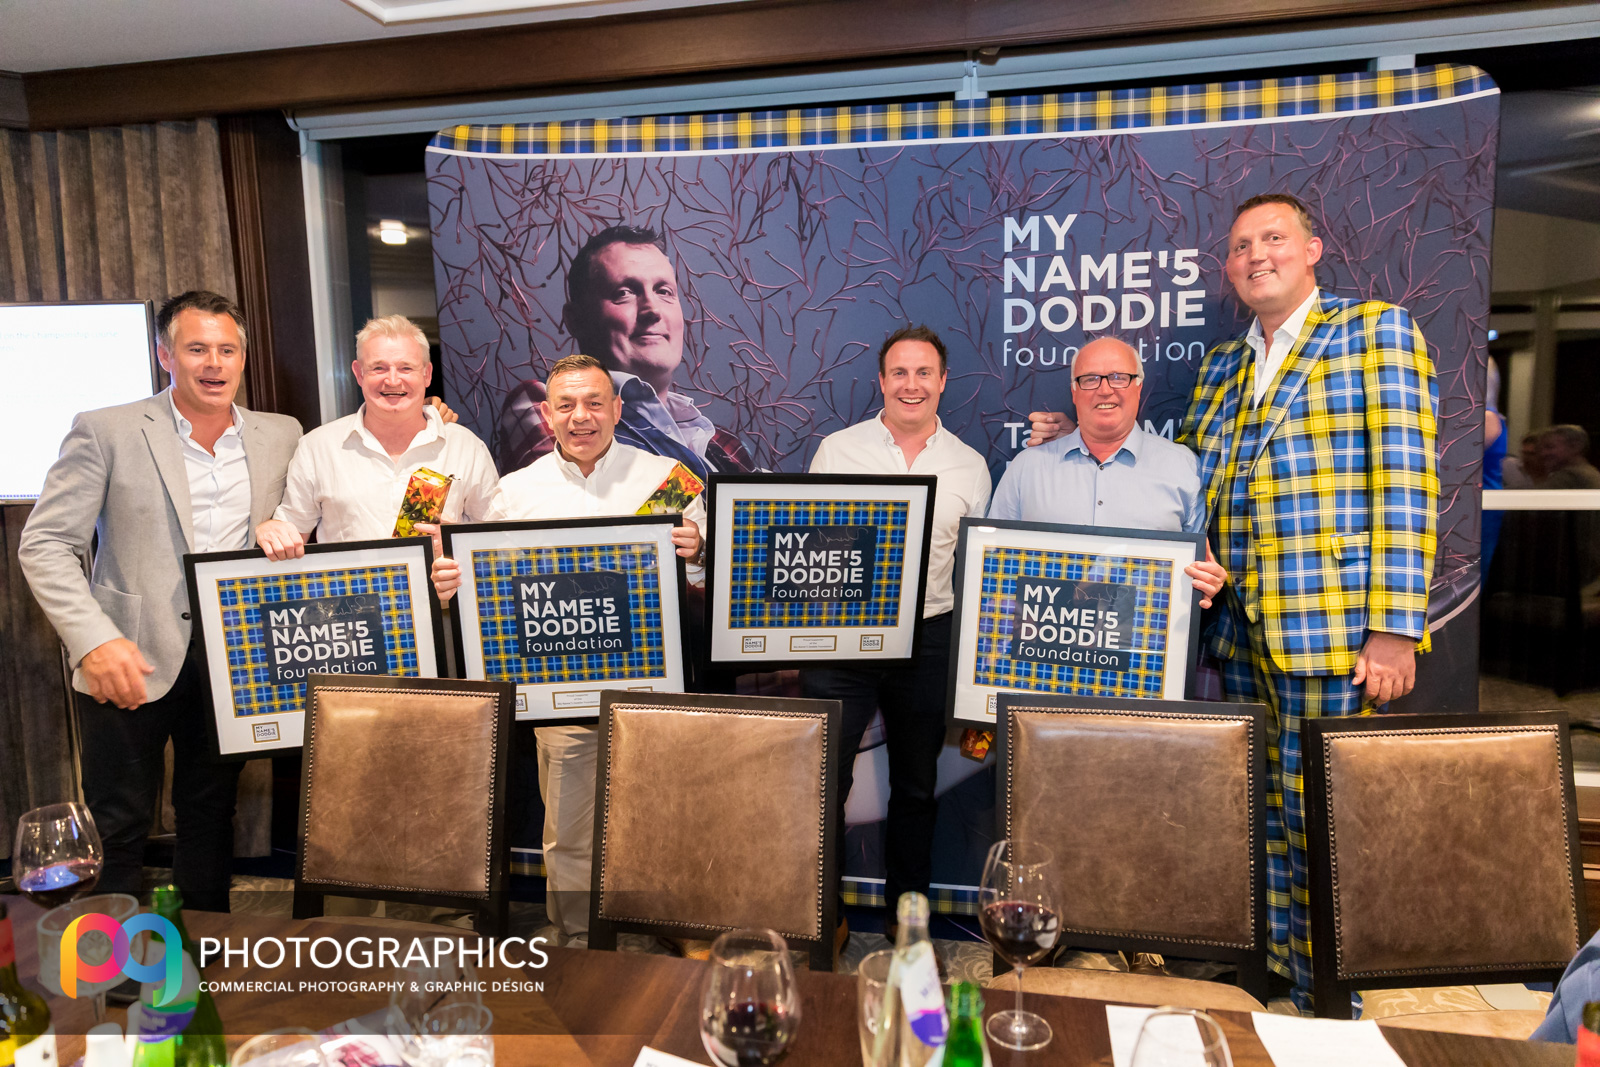 charity-golf-pr-event-photography-glasgow-edinburgh-scotland-33.jpg